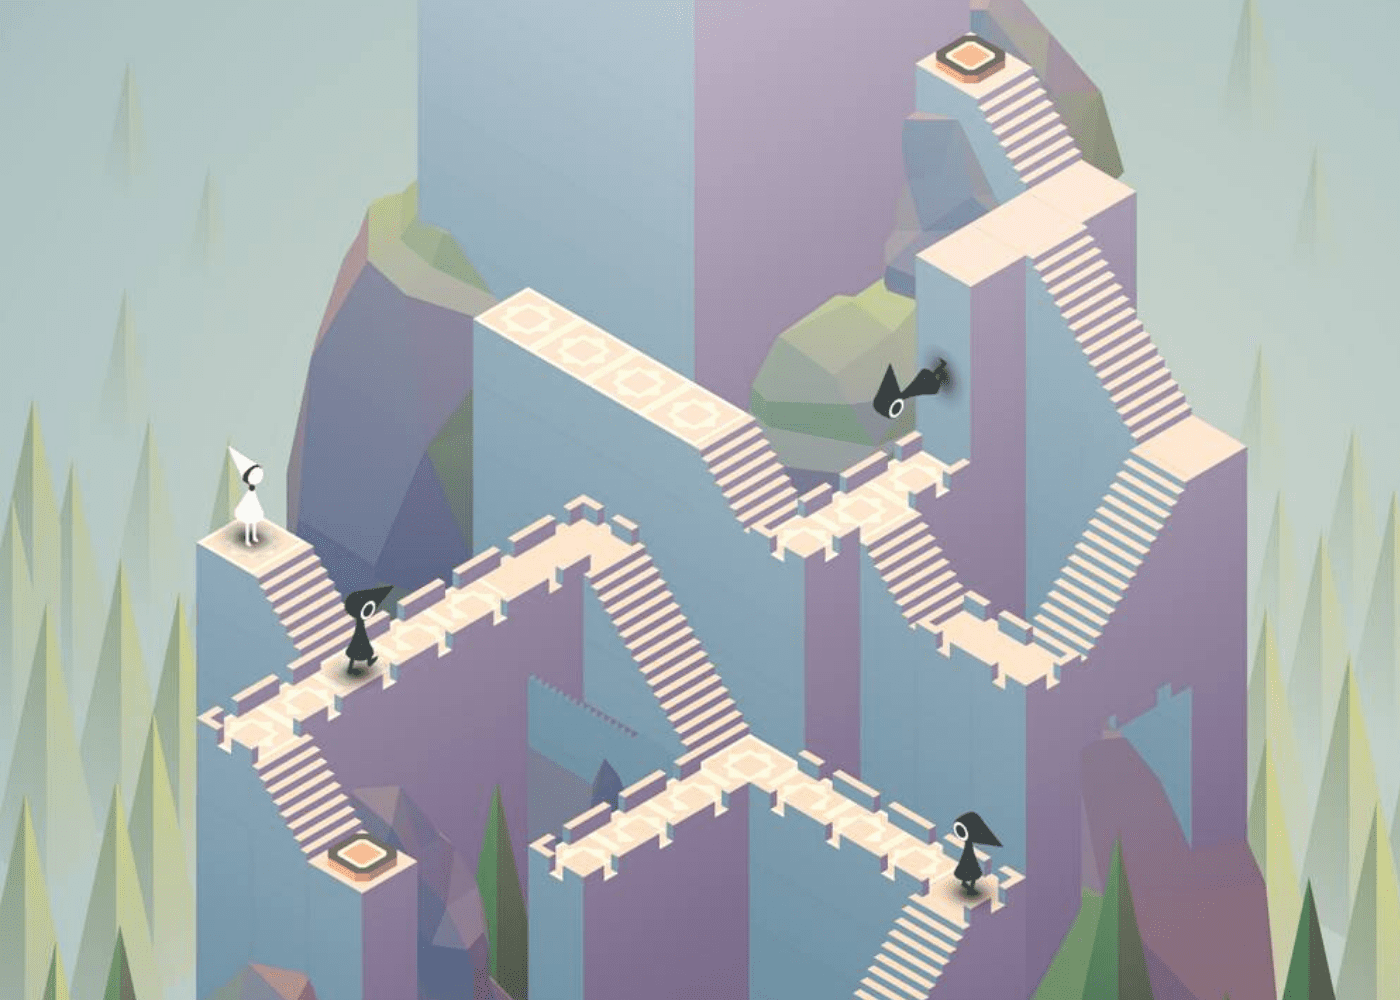 Mobile games: Monument Valley